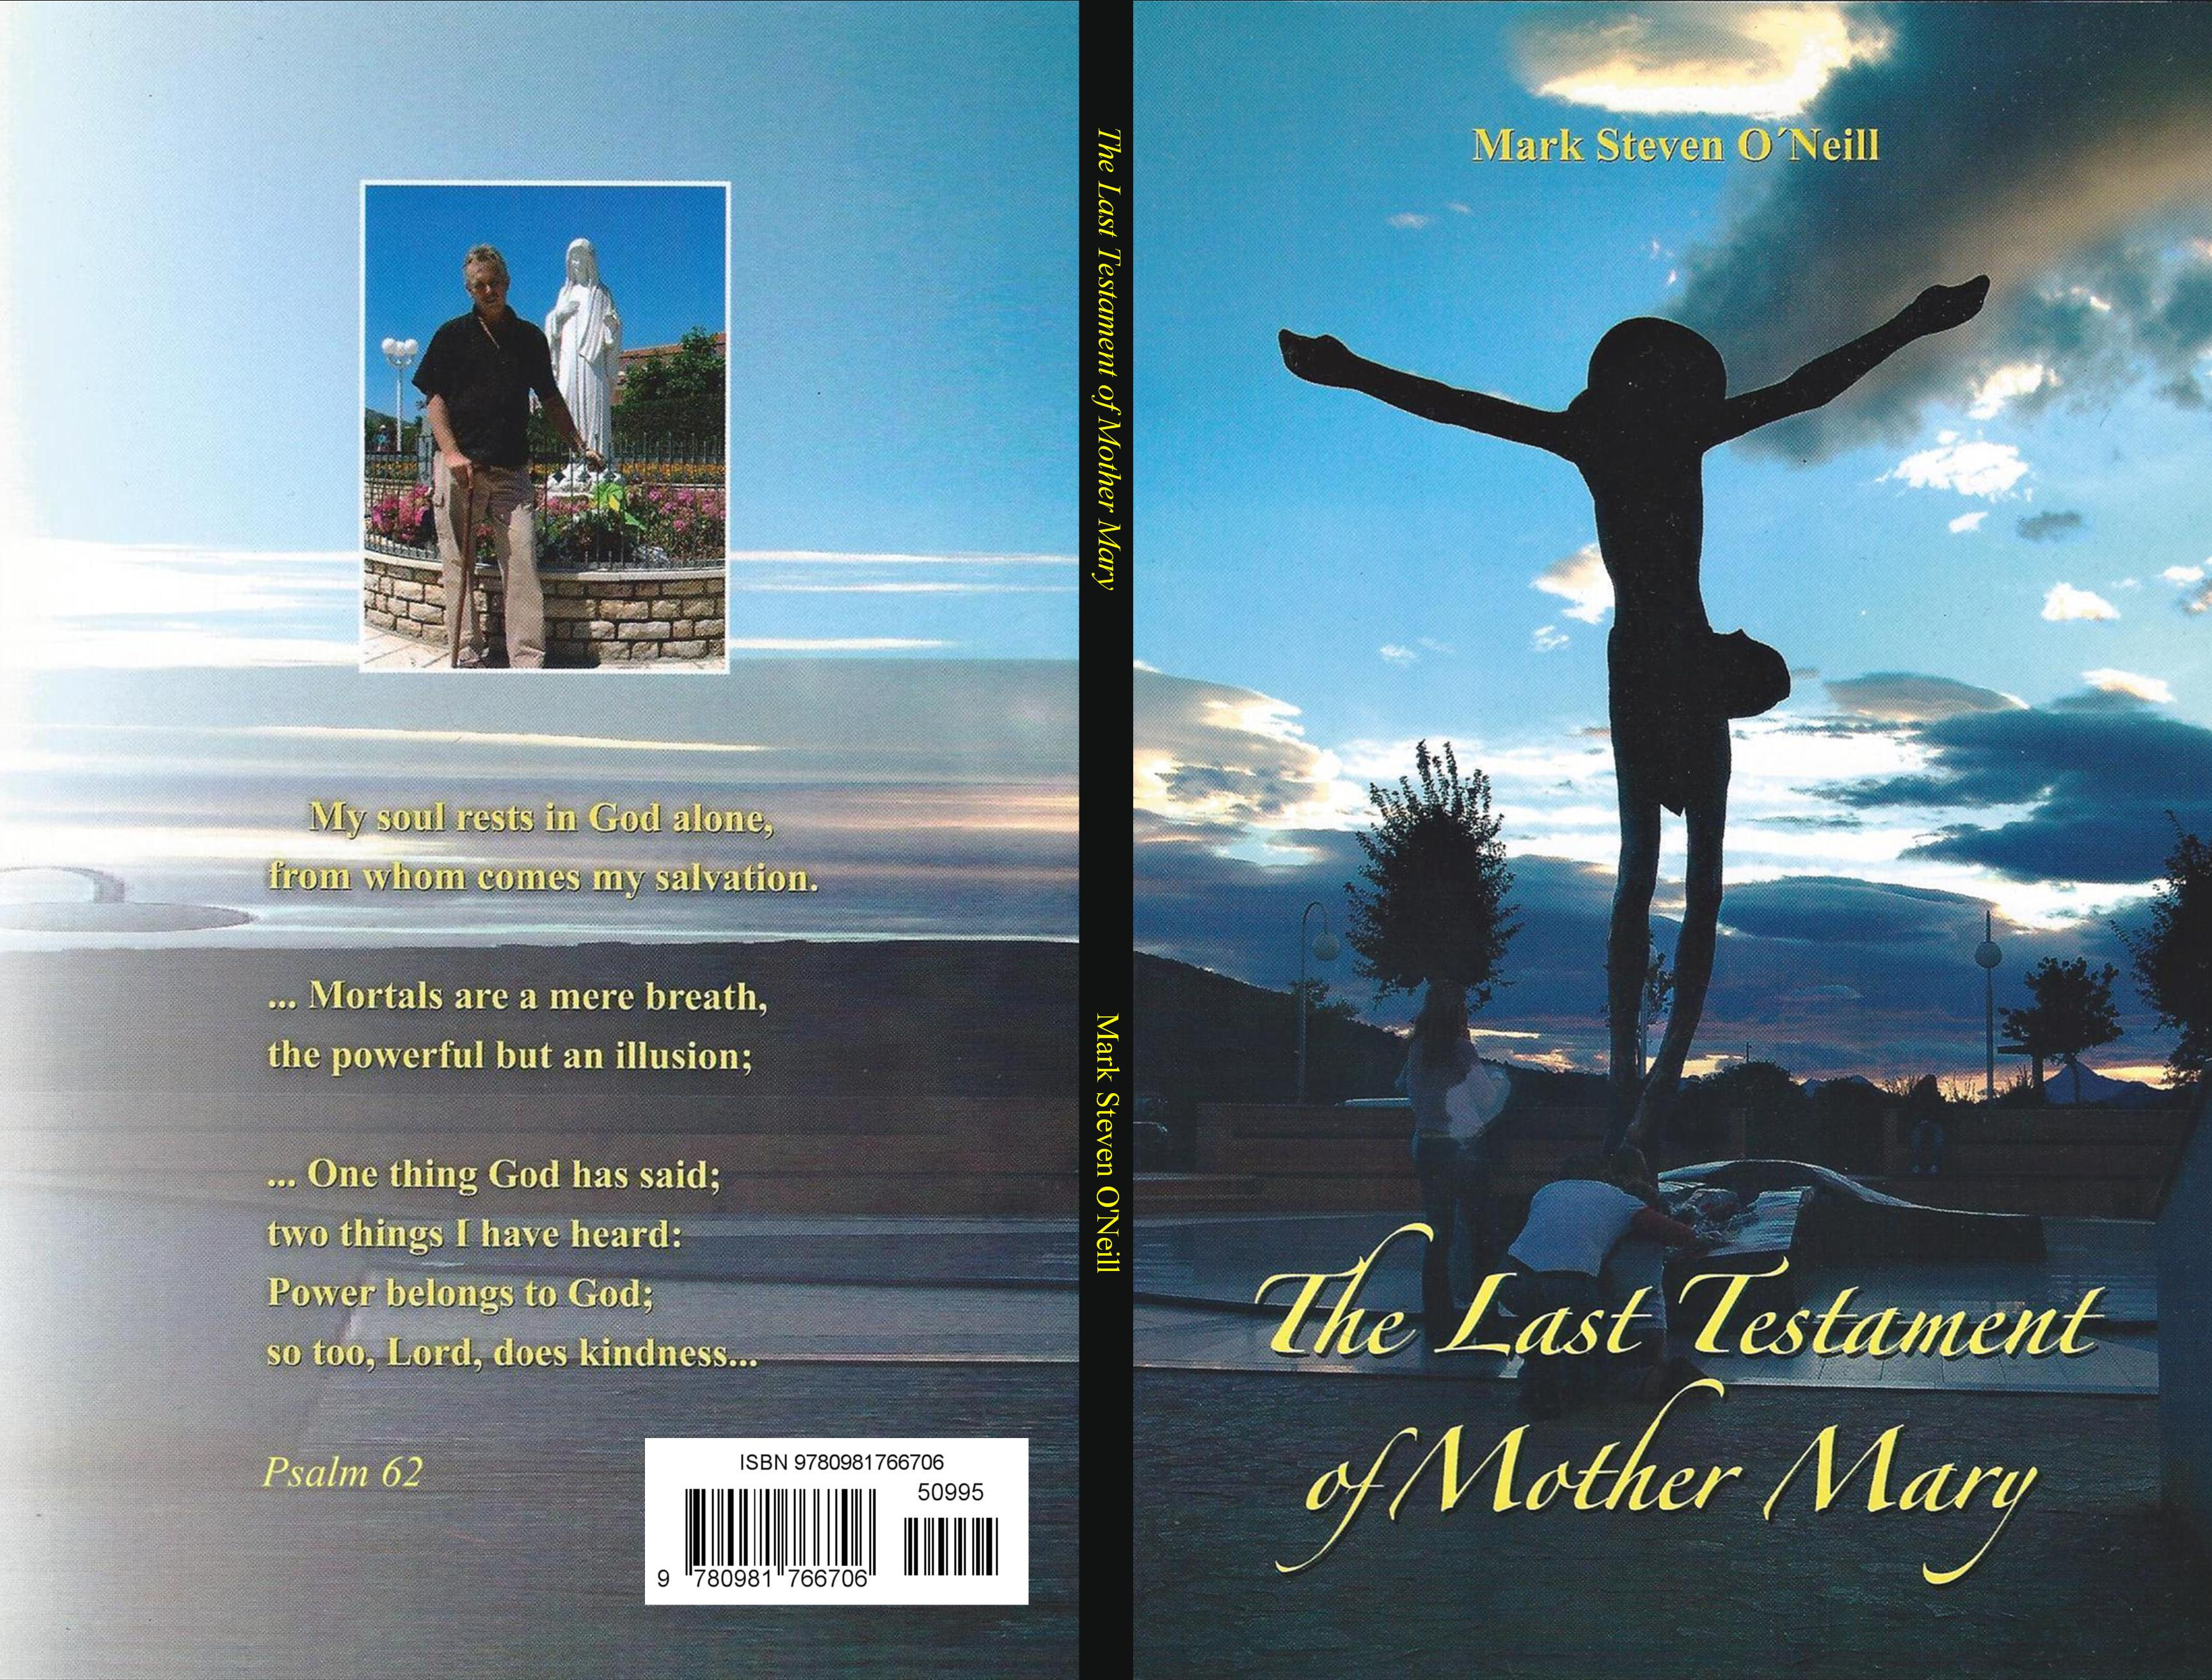 The Last Testament of Mother Mary cover image